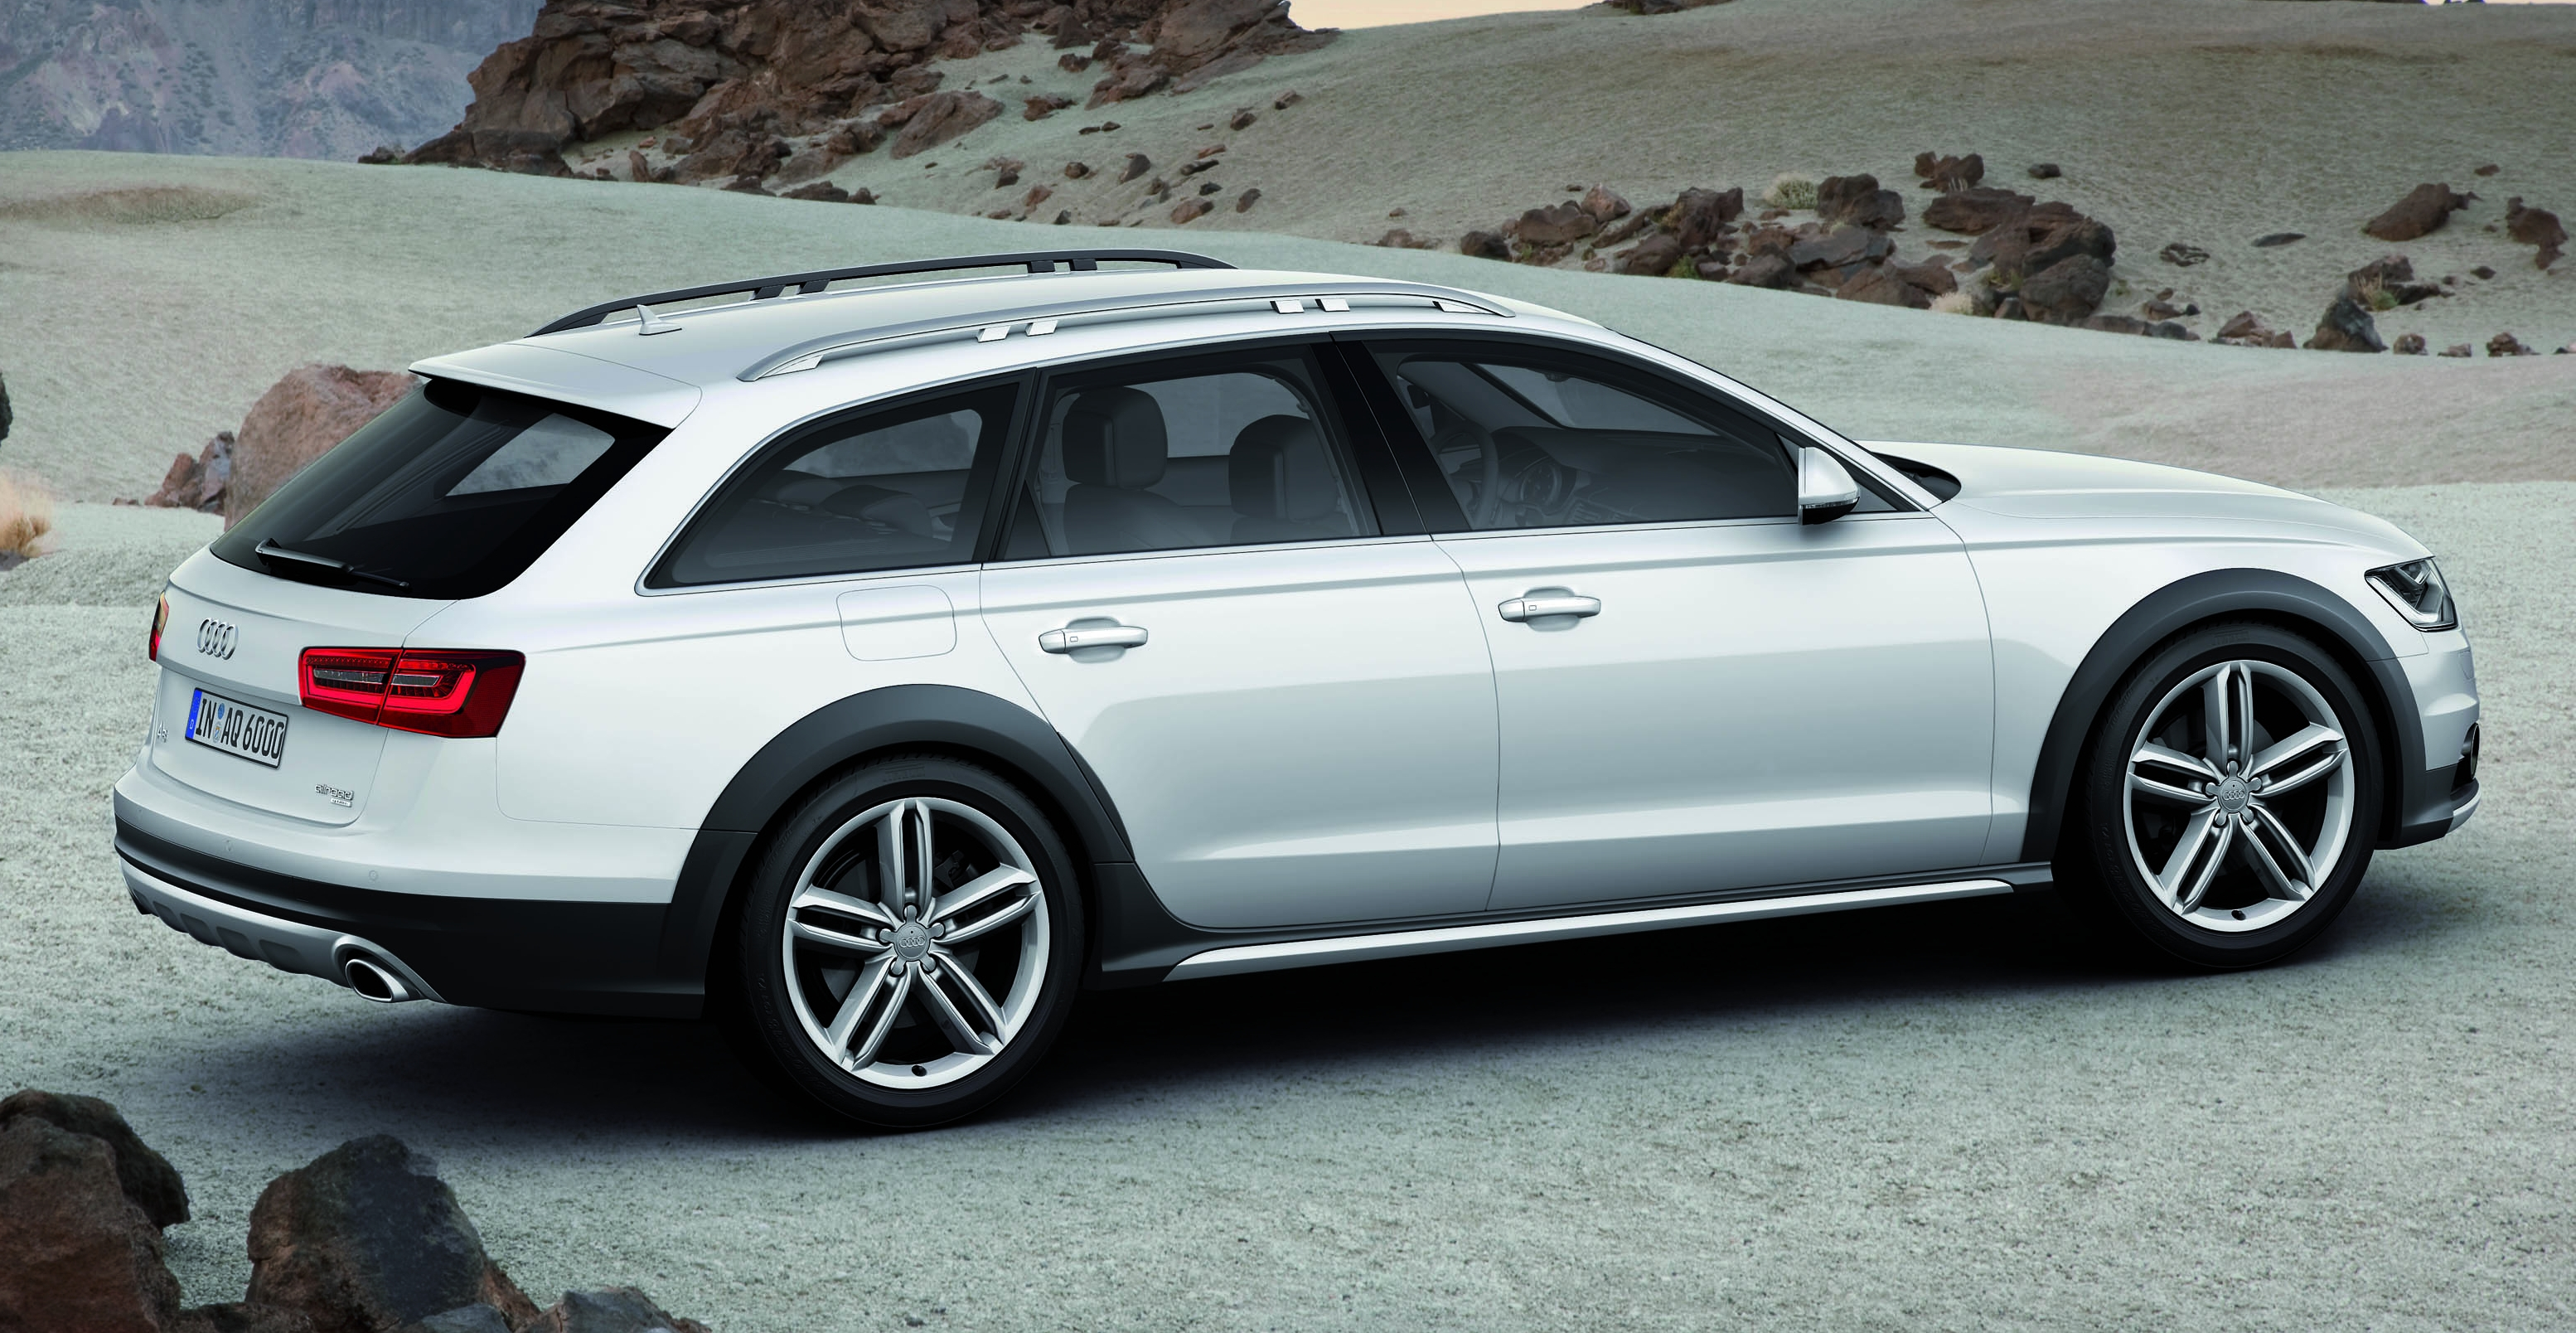 Audi A Allroad Quattro The Avant That Drives On All Roads Image - Audi a6 allroad